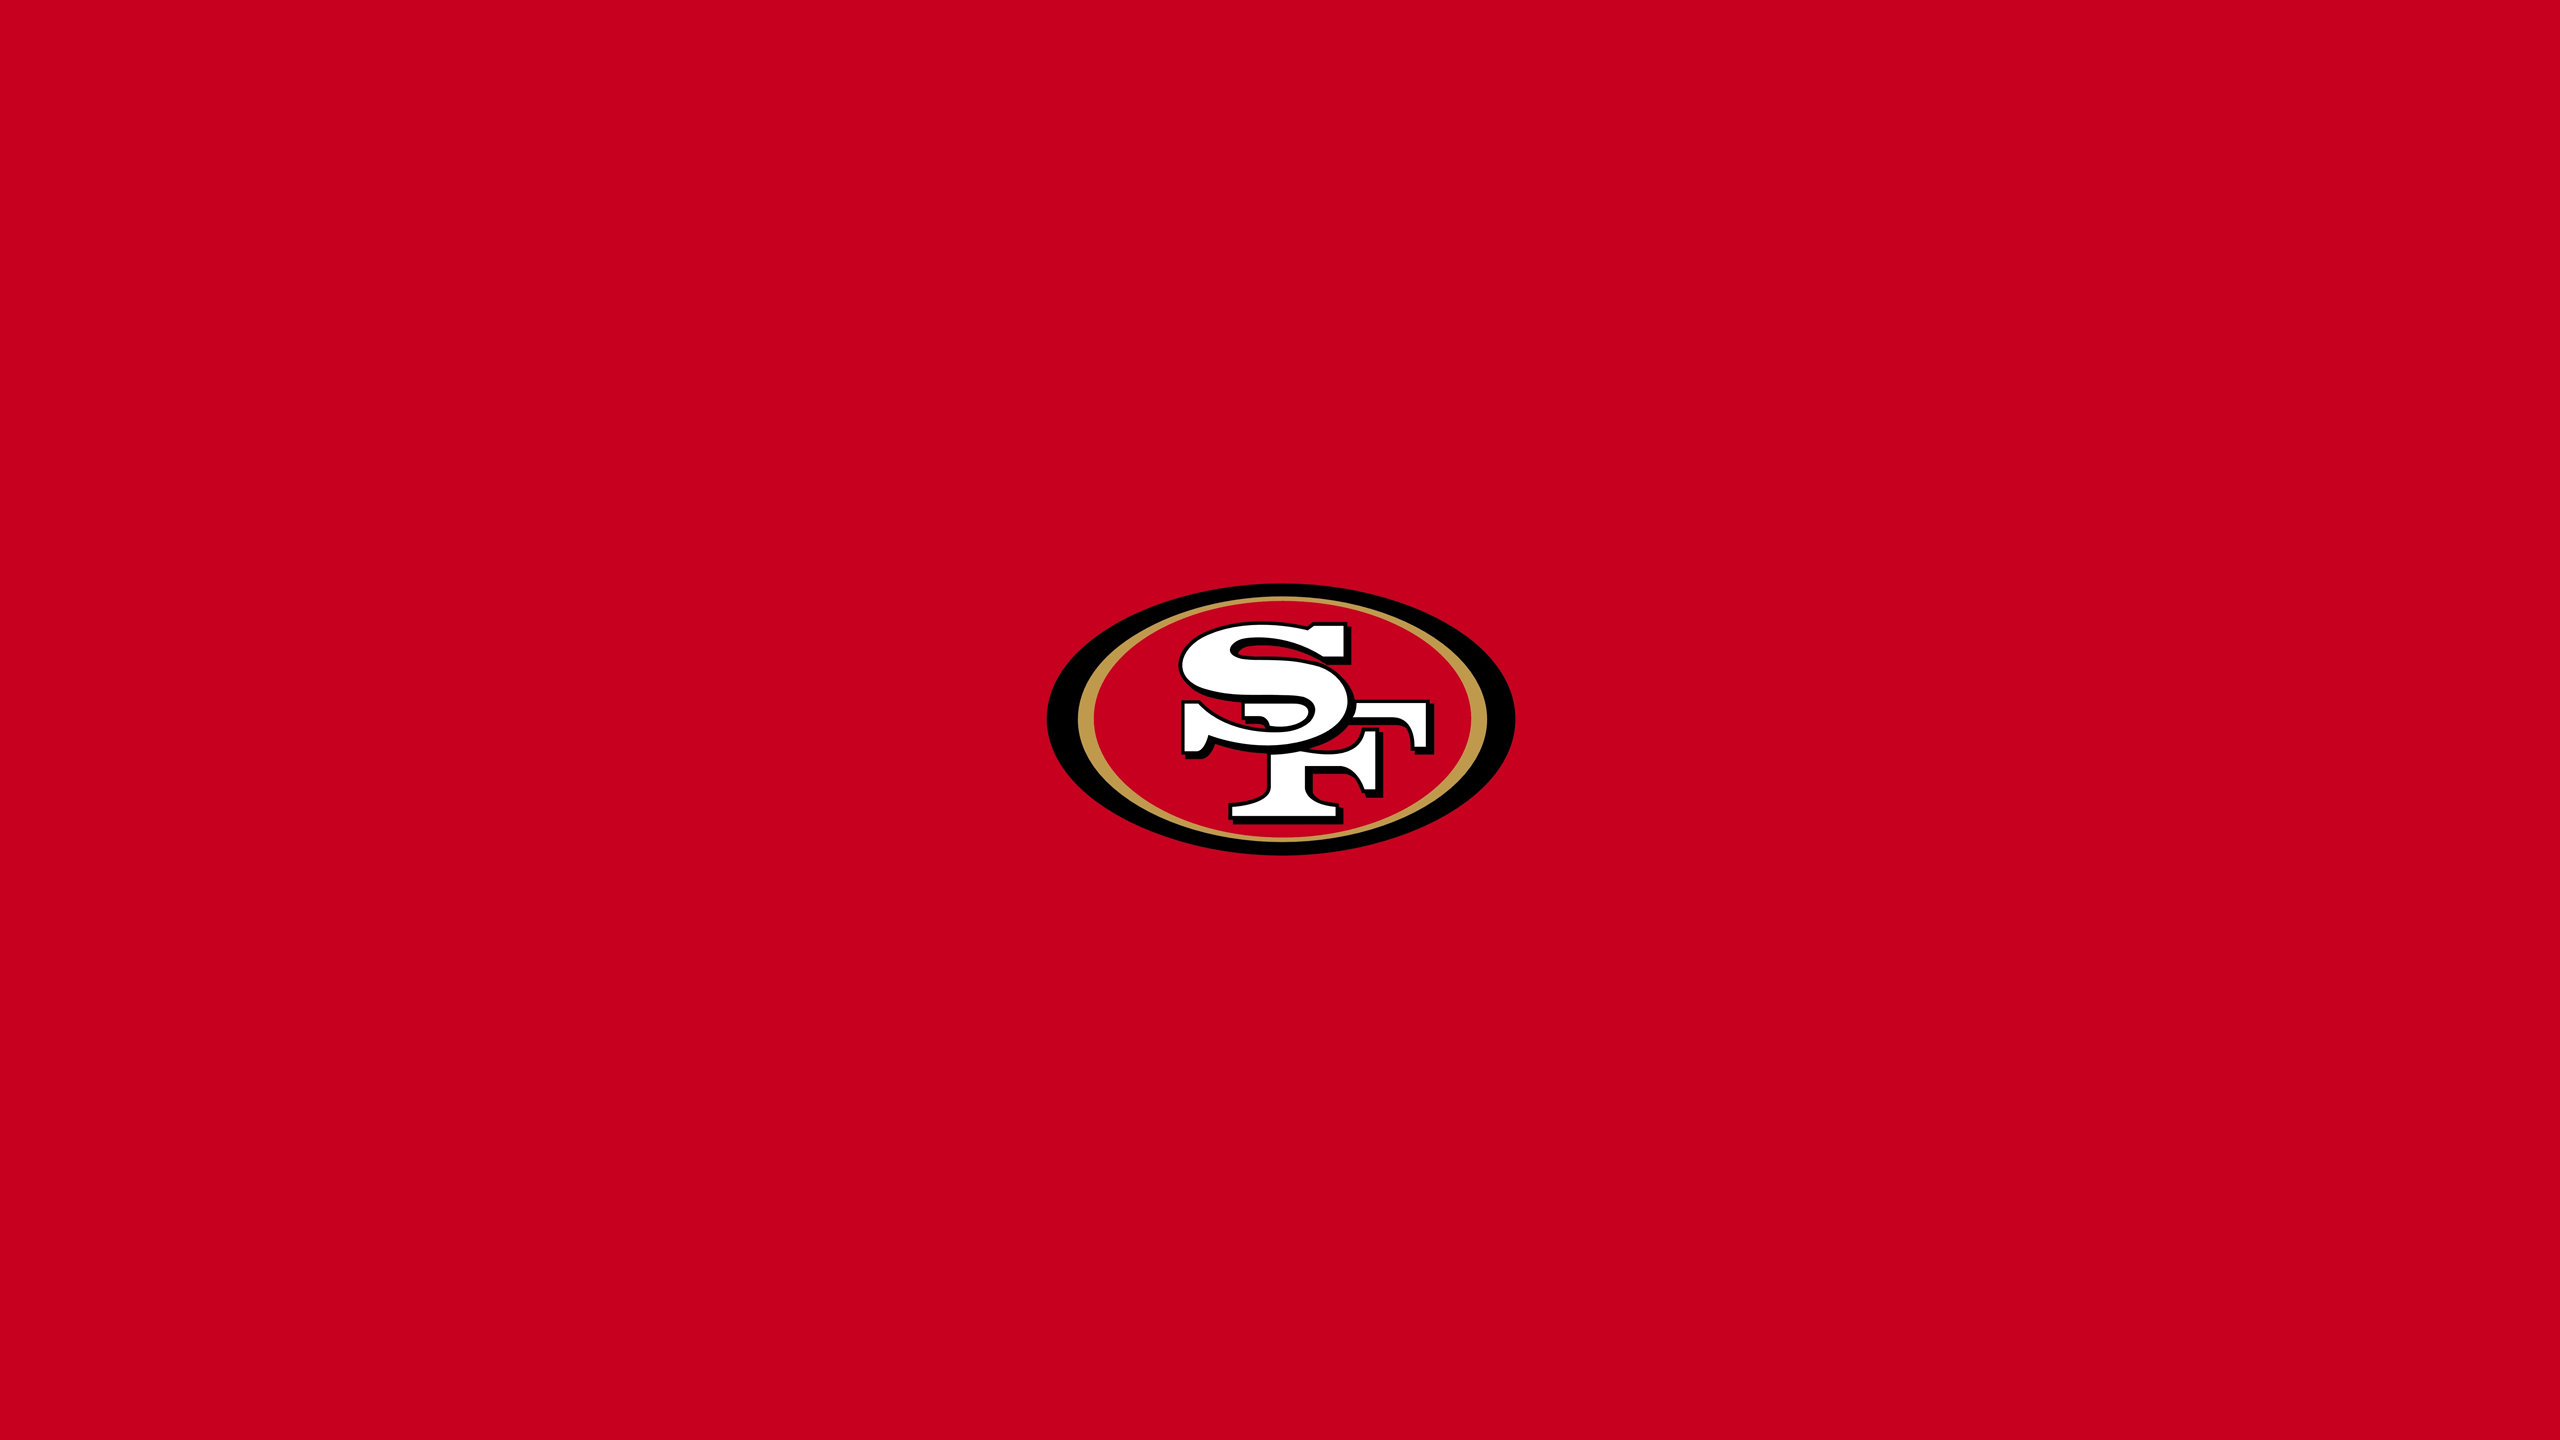 49er desktop wallpapers wallpaper cave logo 49ers wallpaper 5245 1440x2560px 49ers wallpaper 49ers voltagebd Images